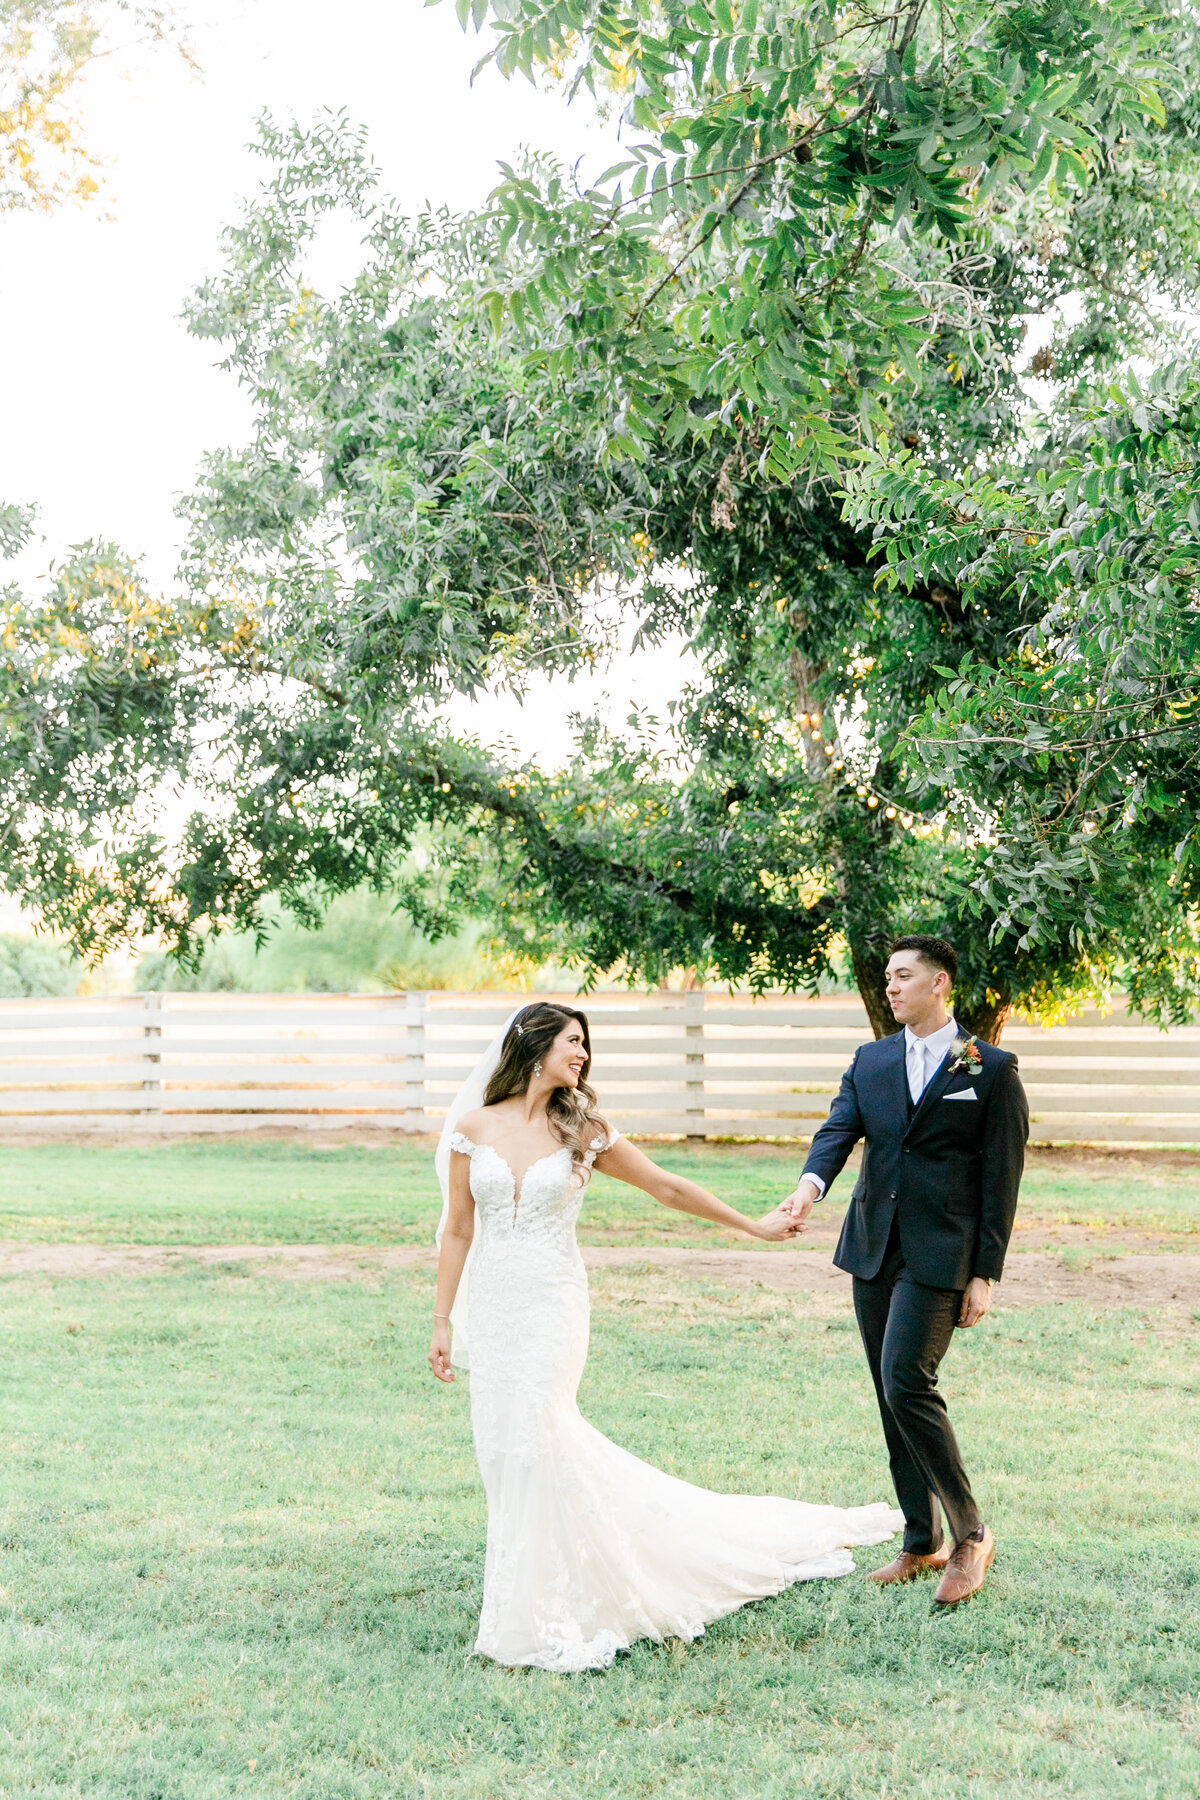 Karlie Colleen Photography - Phoenix Arizona - Farm At South Mountain Venue - Vanessa & Robert-605